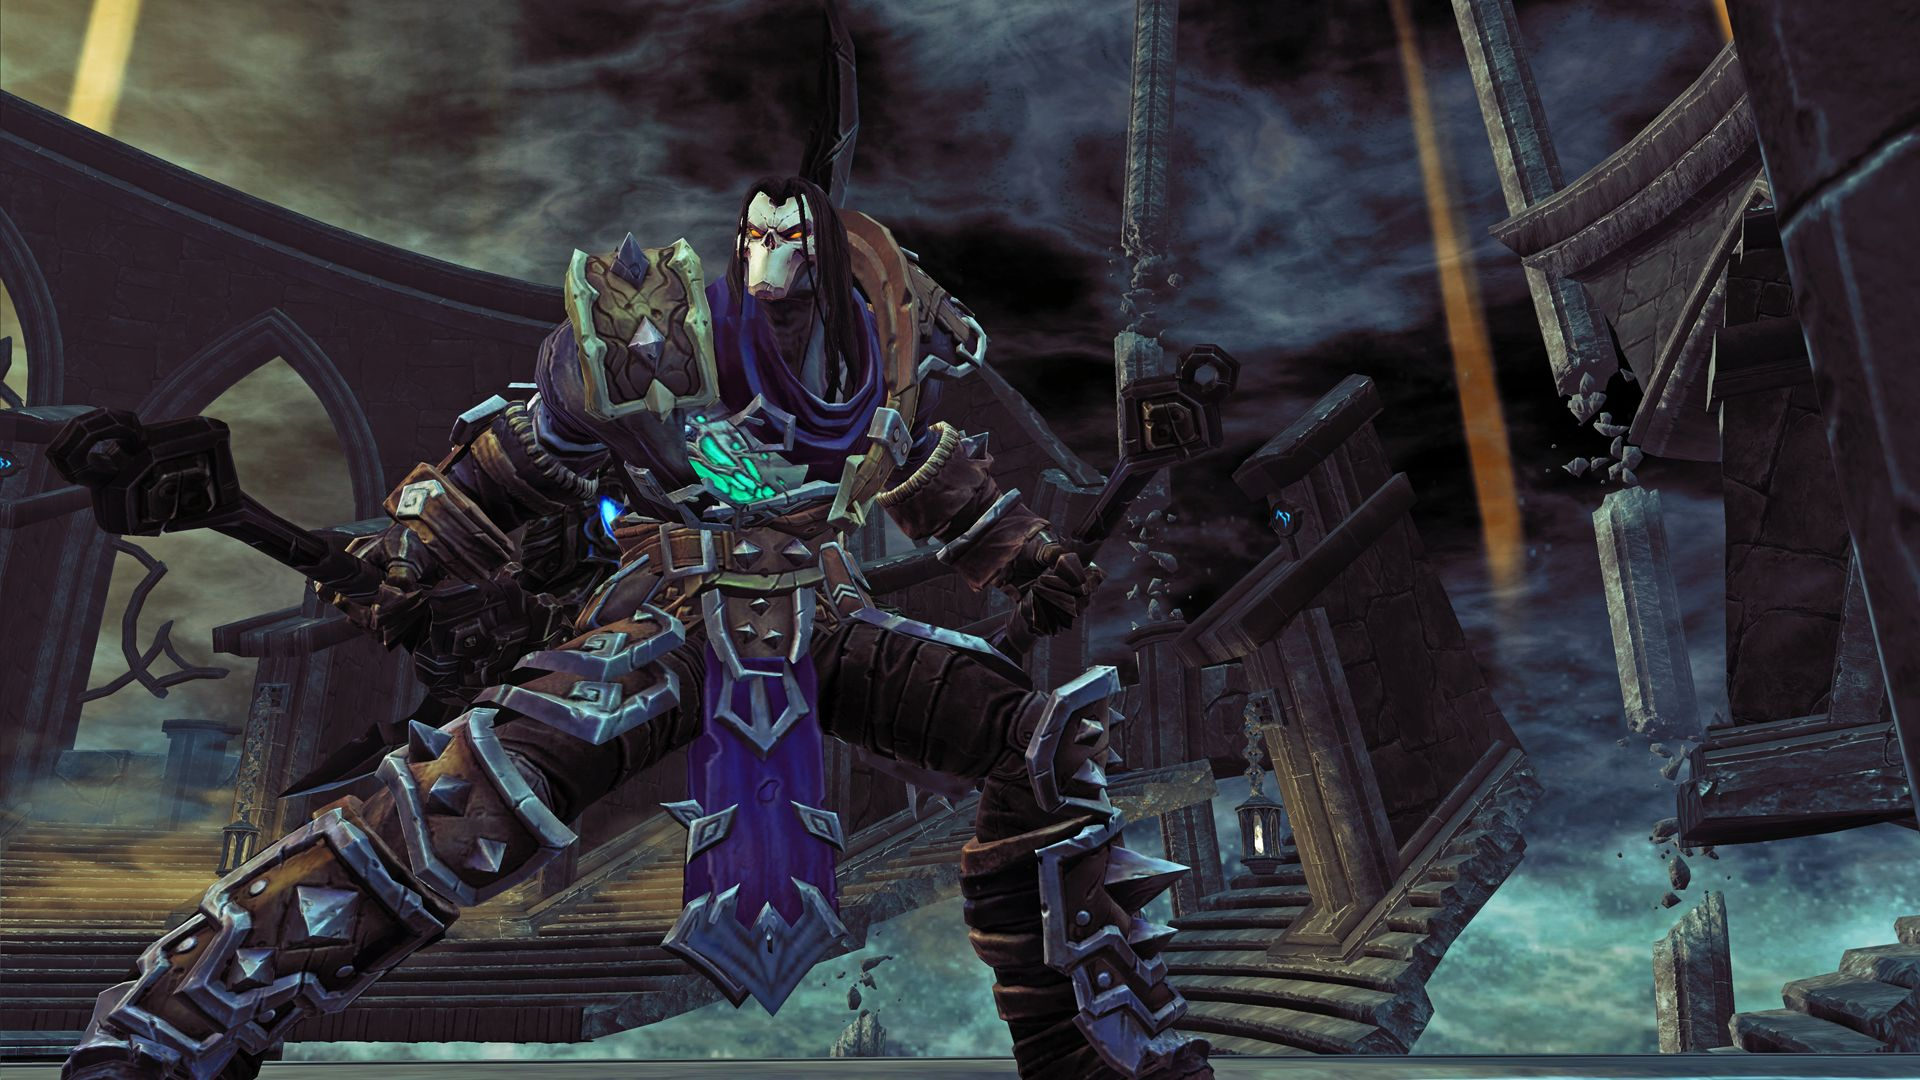 darksiders+2+game+death+strikes+wallpaper+joe+mad+madureira+art+